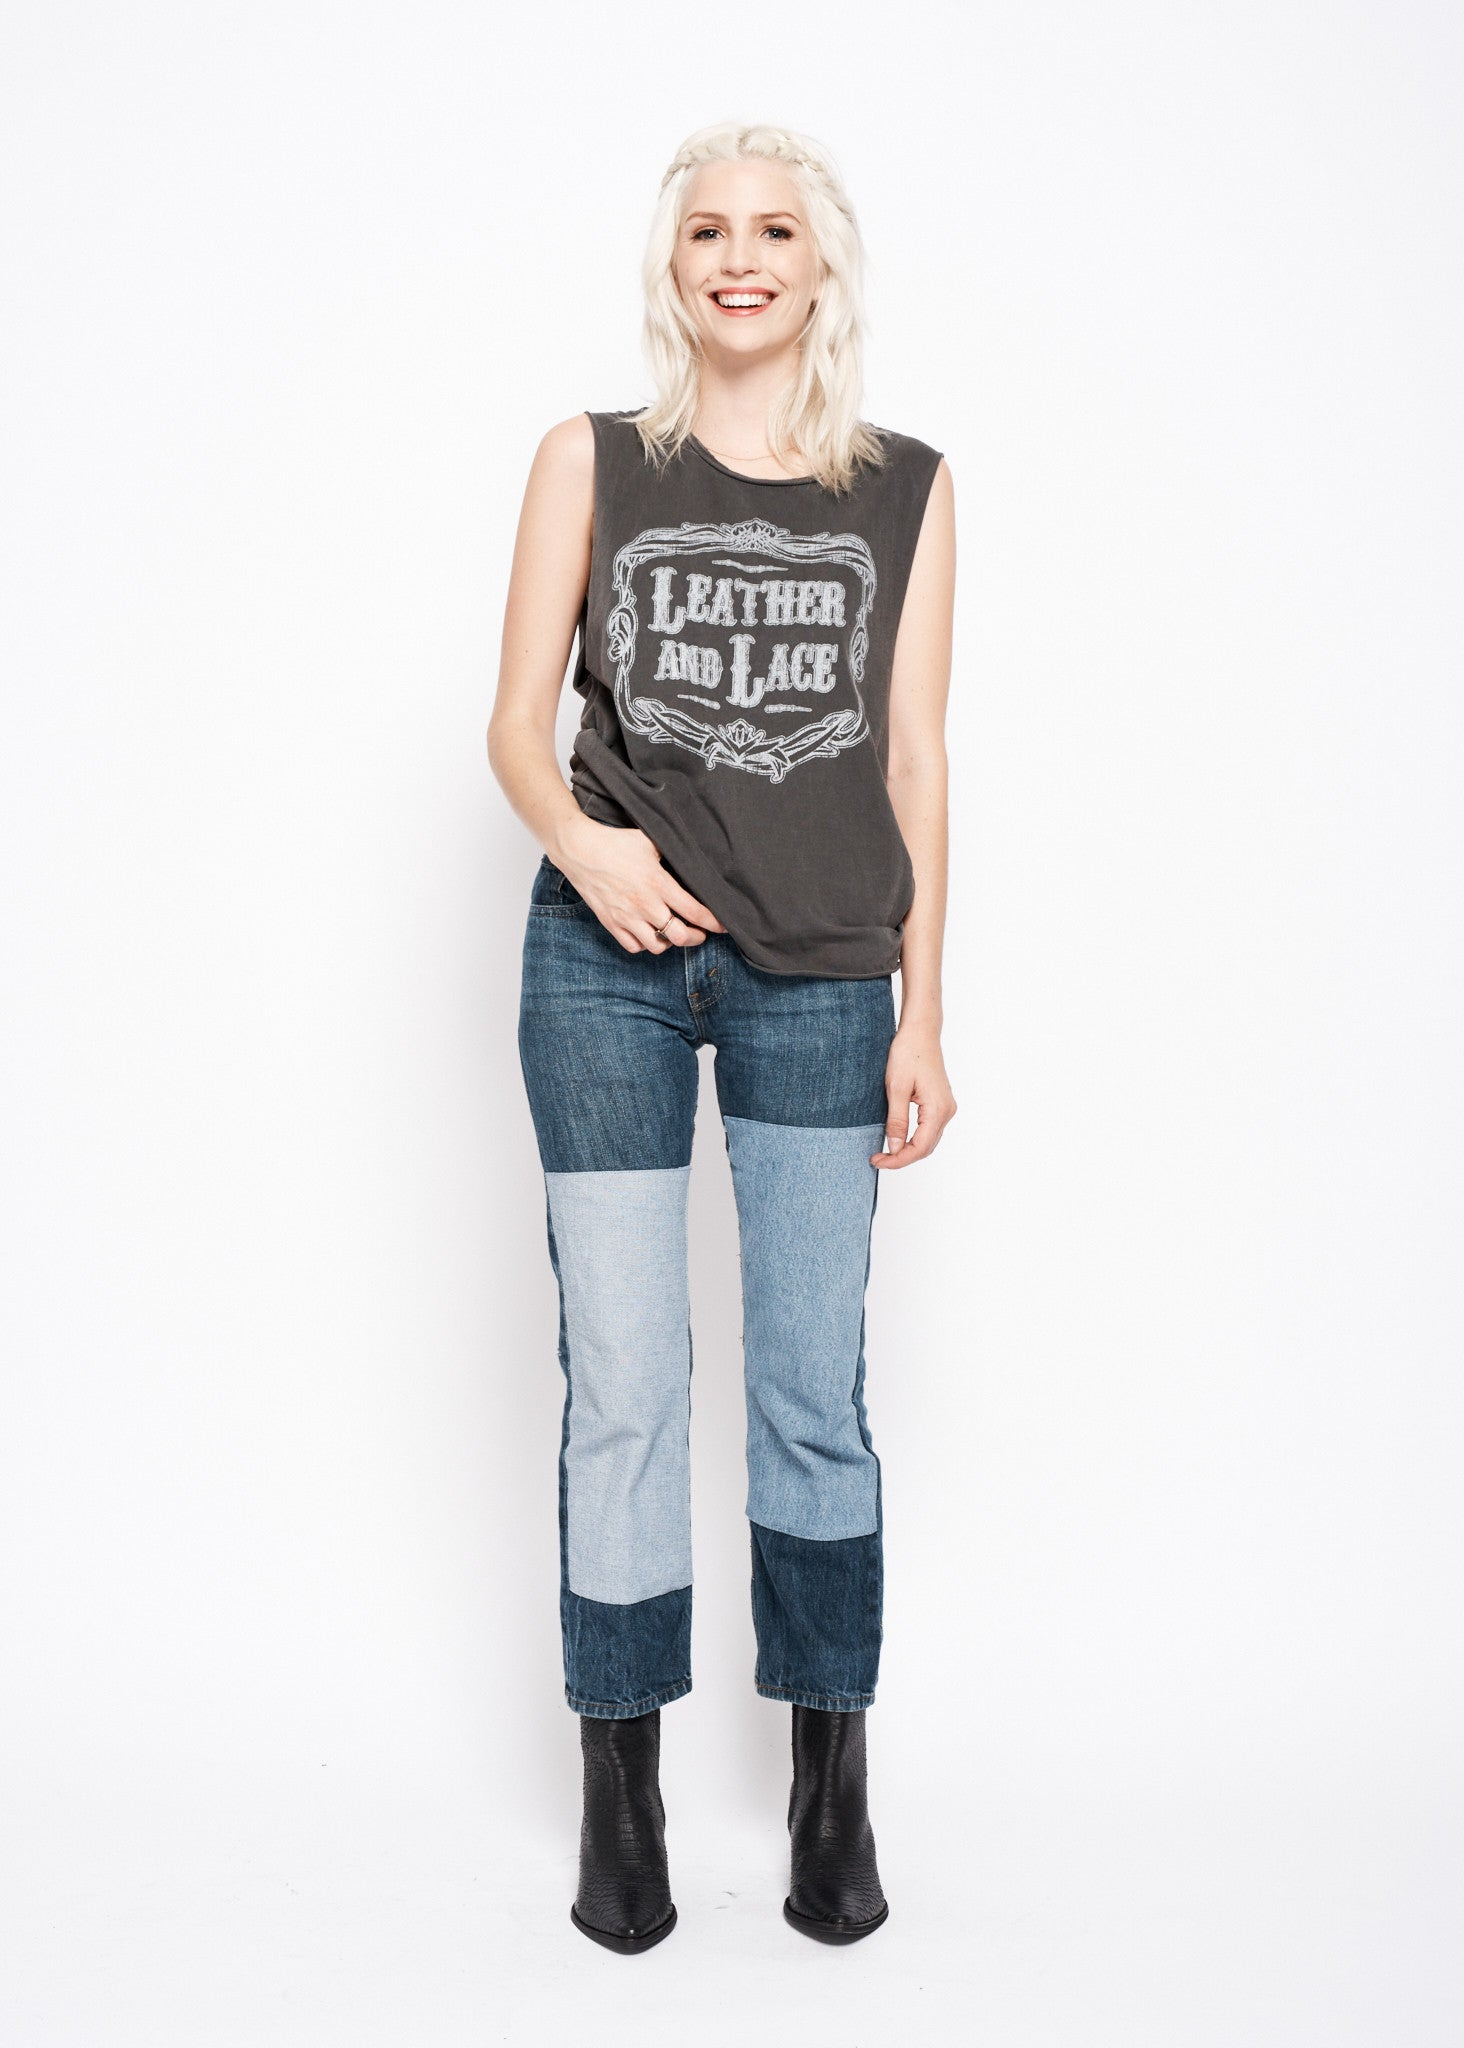 Leather and Lace Muscle Tee - Vintage Black